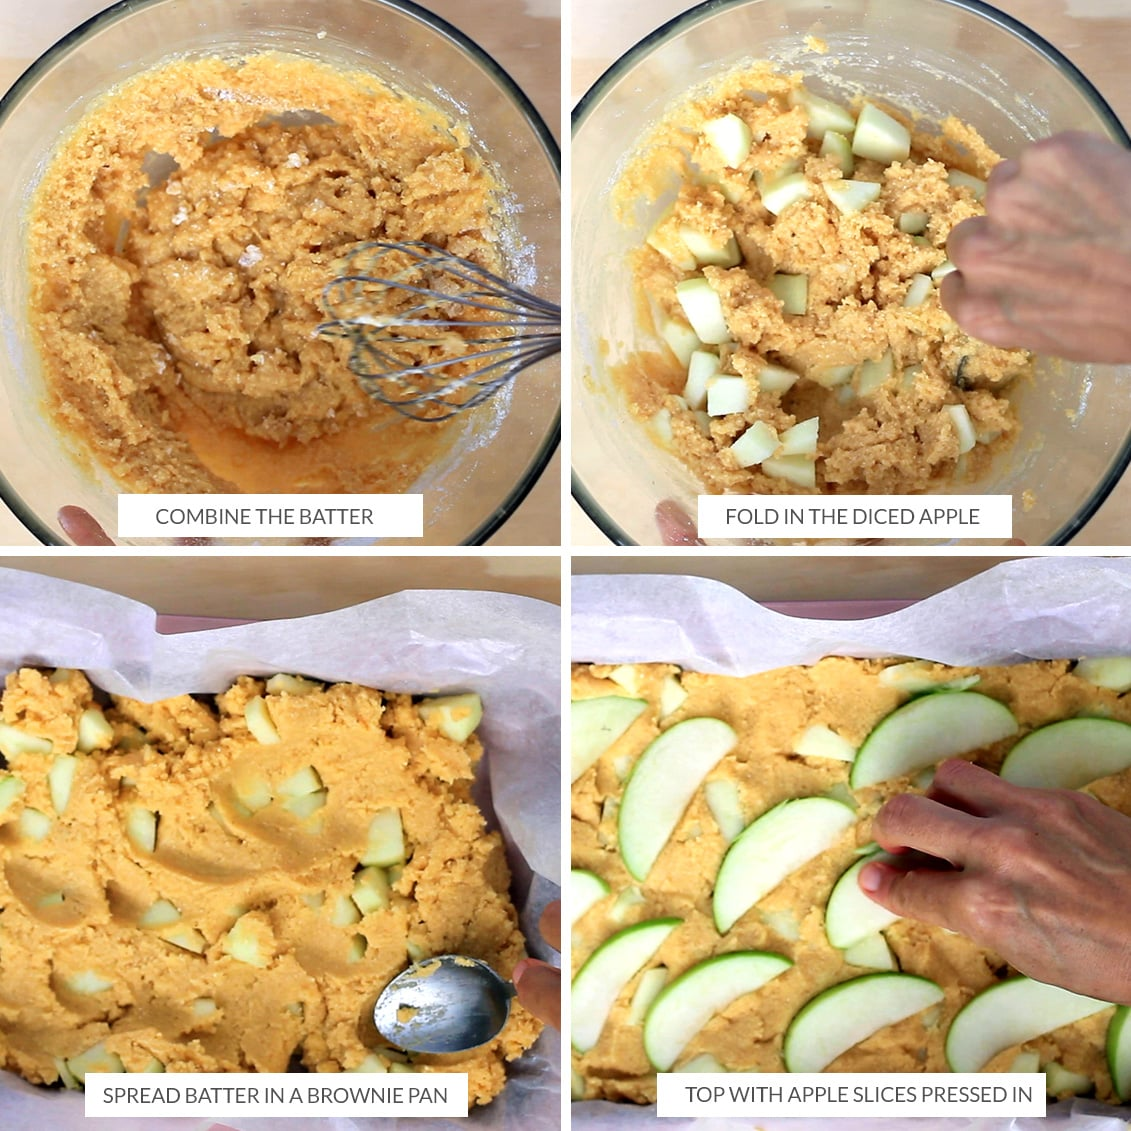 Mixing the batter for apple slice and spreading it in a brownie pan